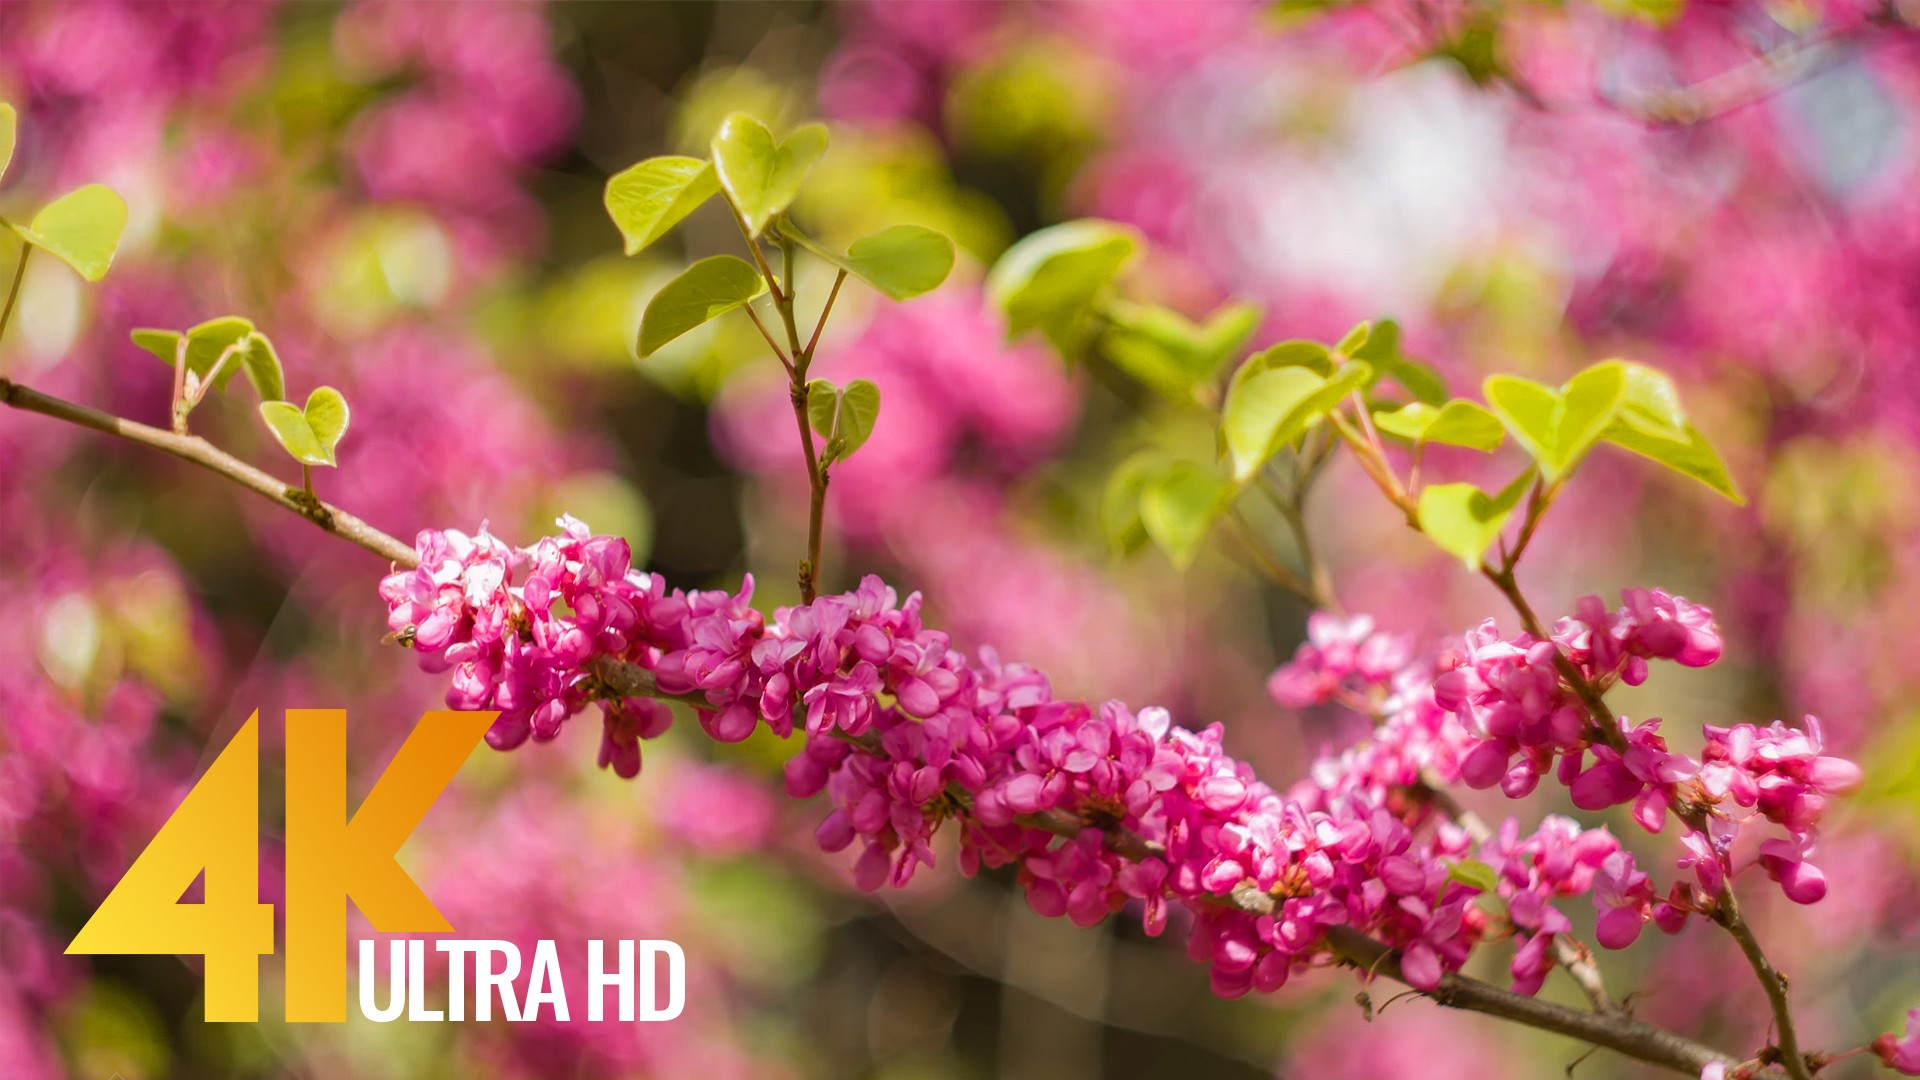 4k Spring Flowers And Autumn Leaves Nature Relax Video Proartinc